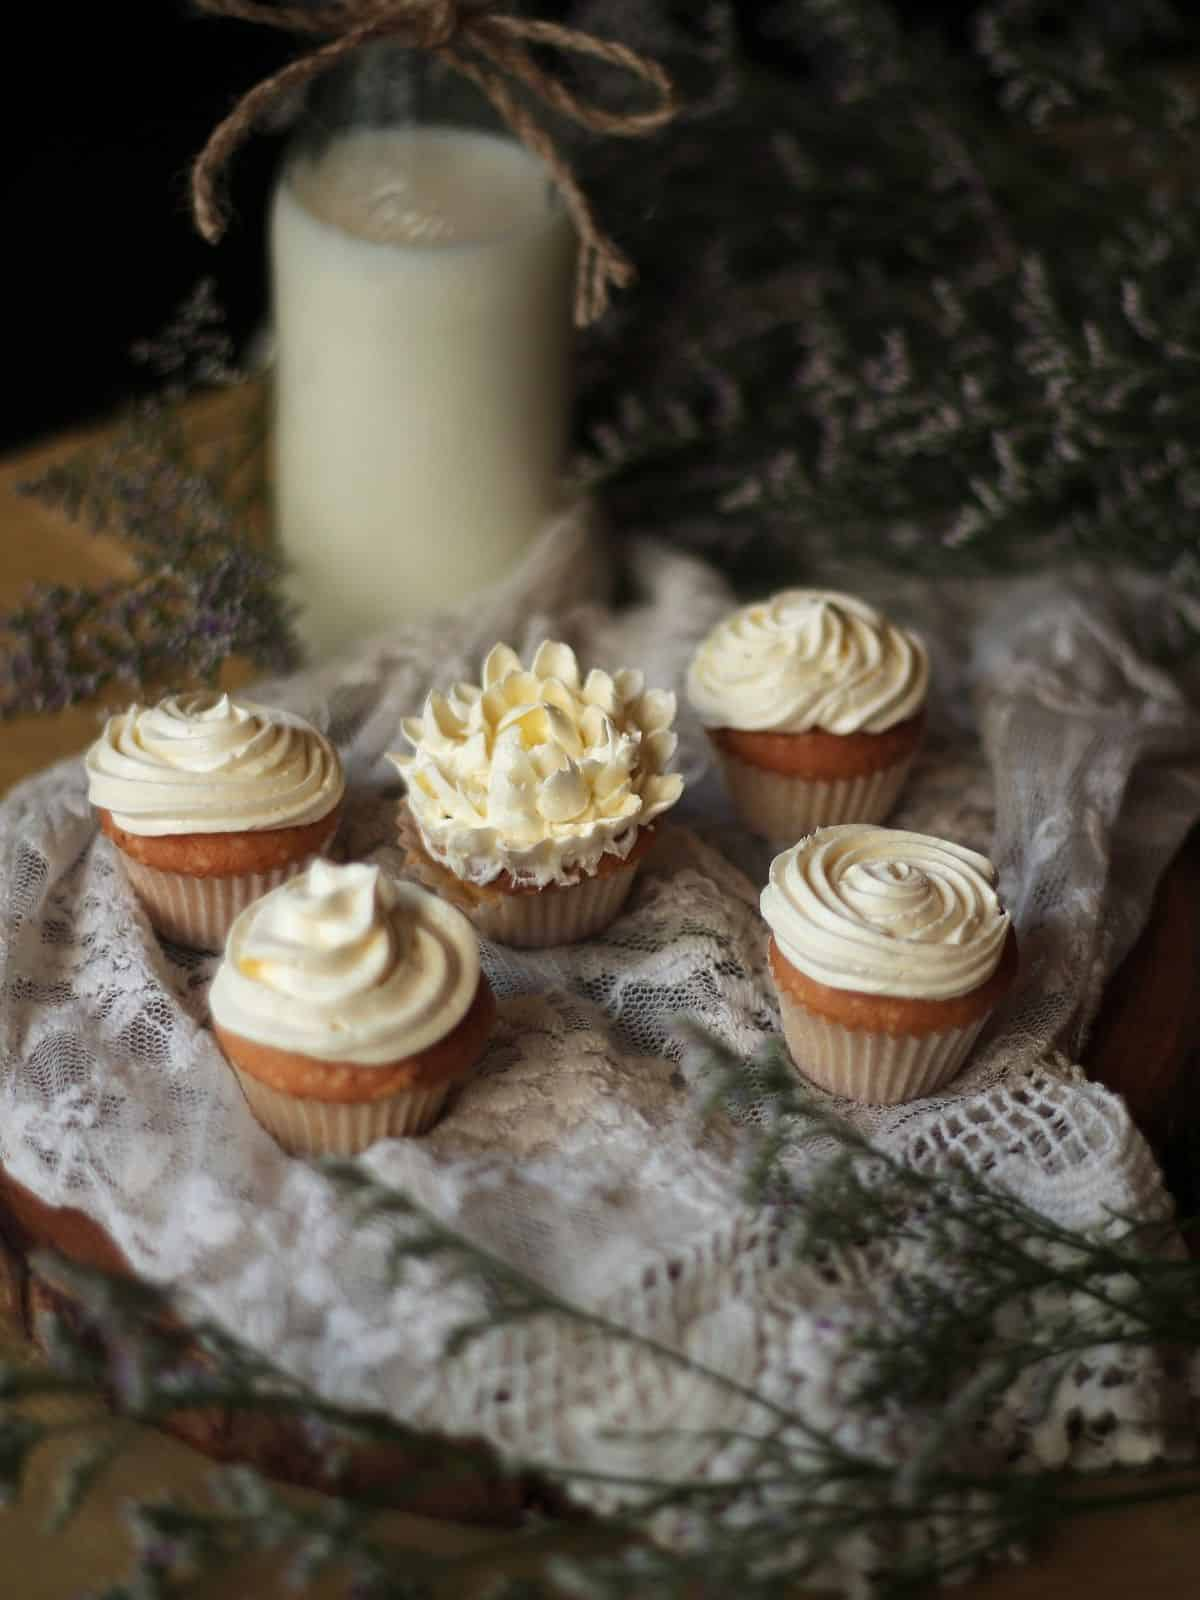 cupcakes with buttercream icing.